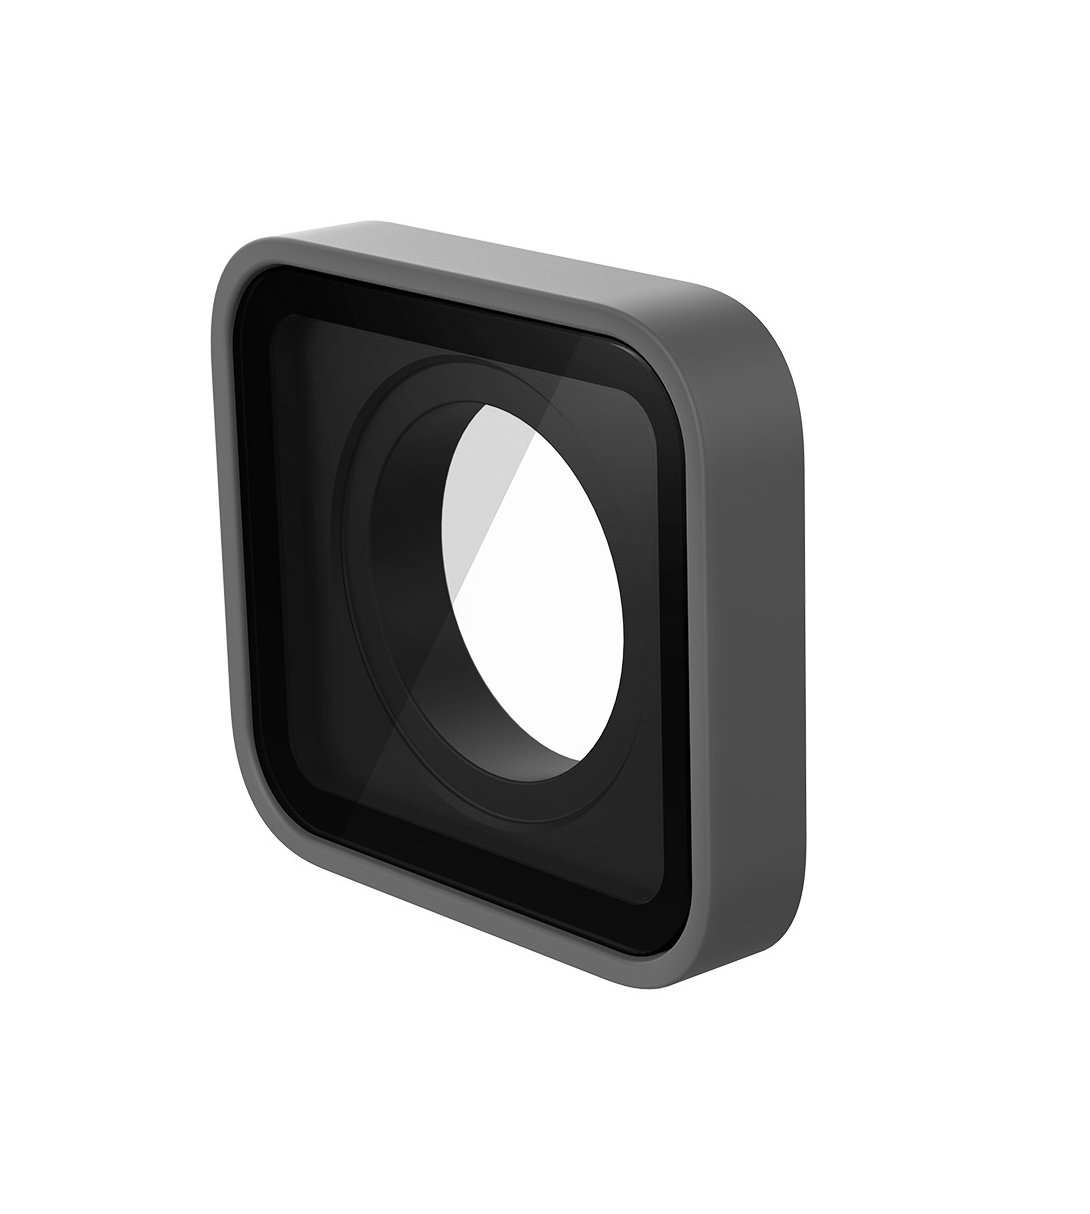 HERO5 Black Protective Lens Replacement